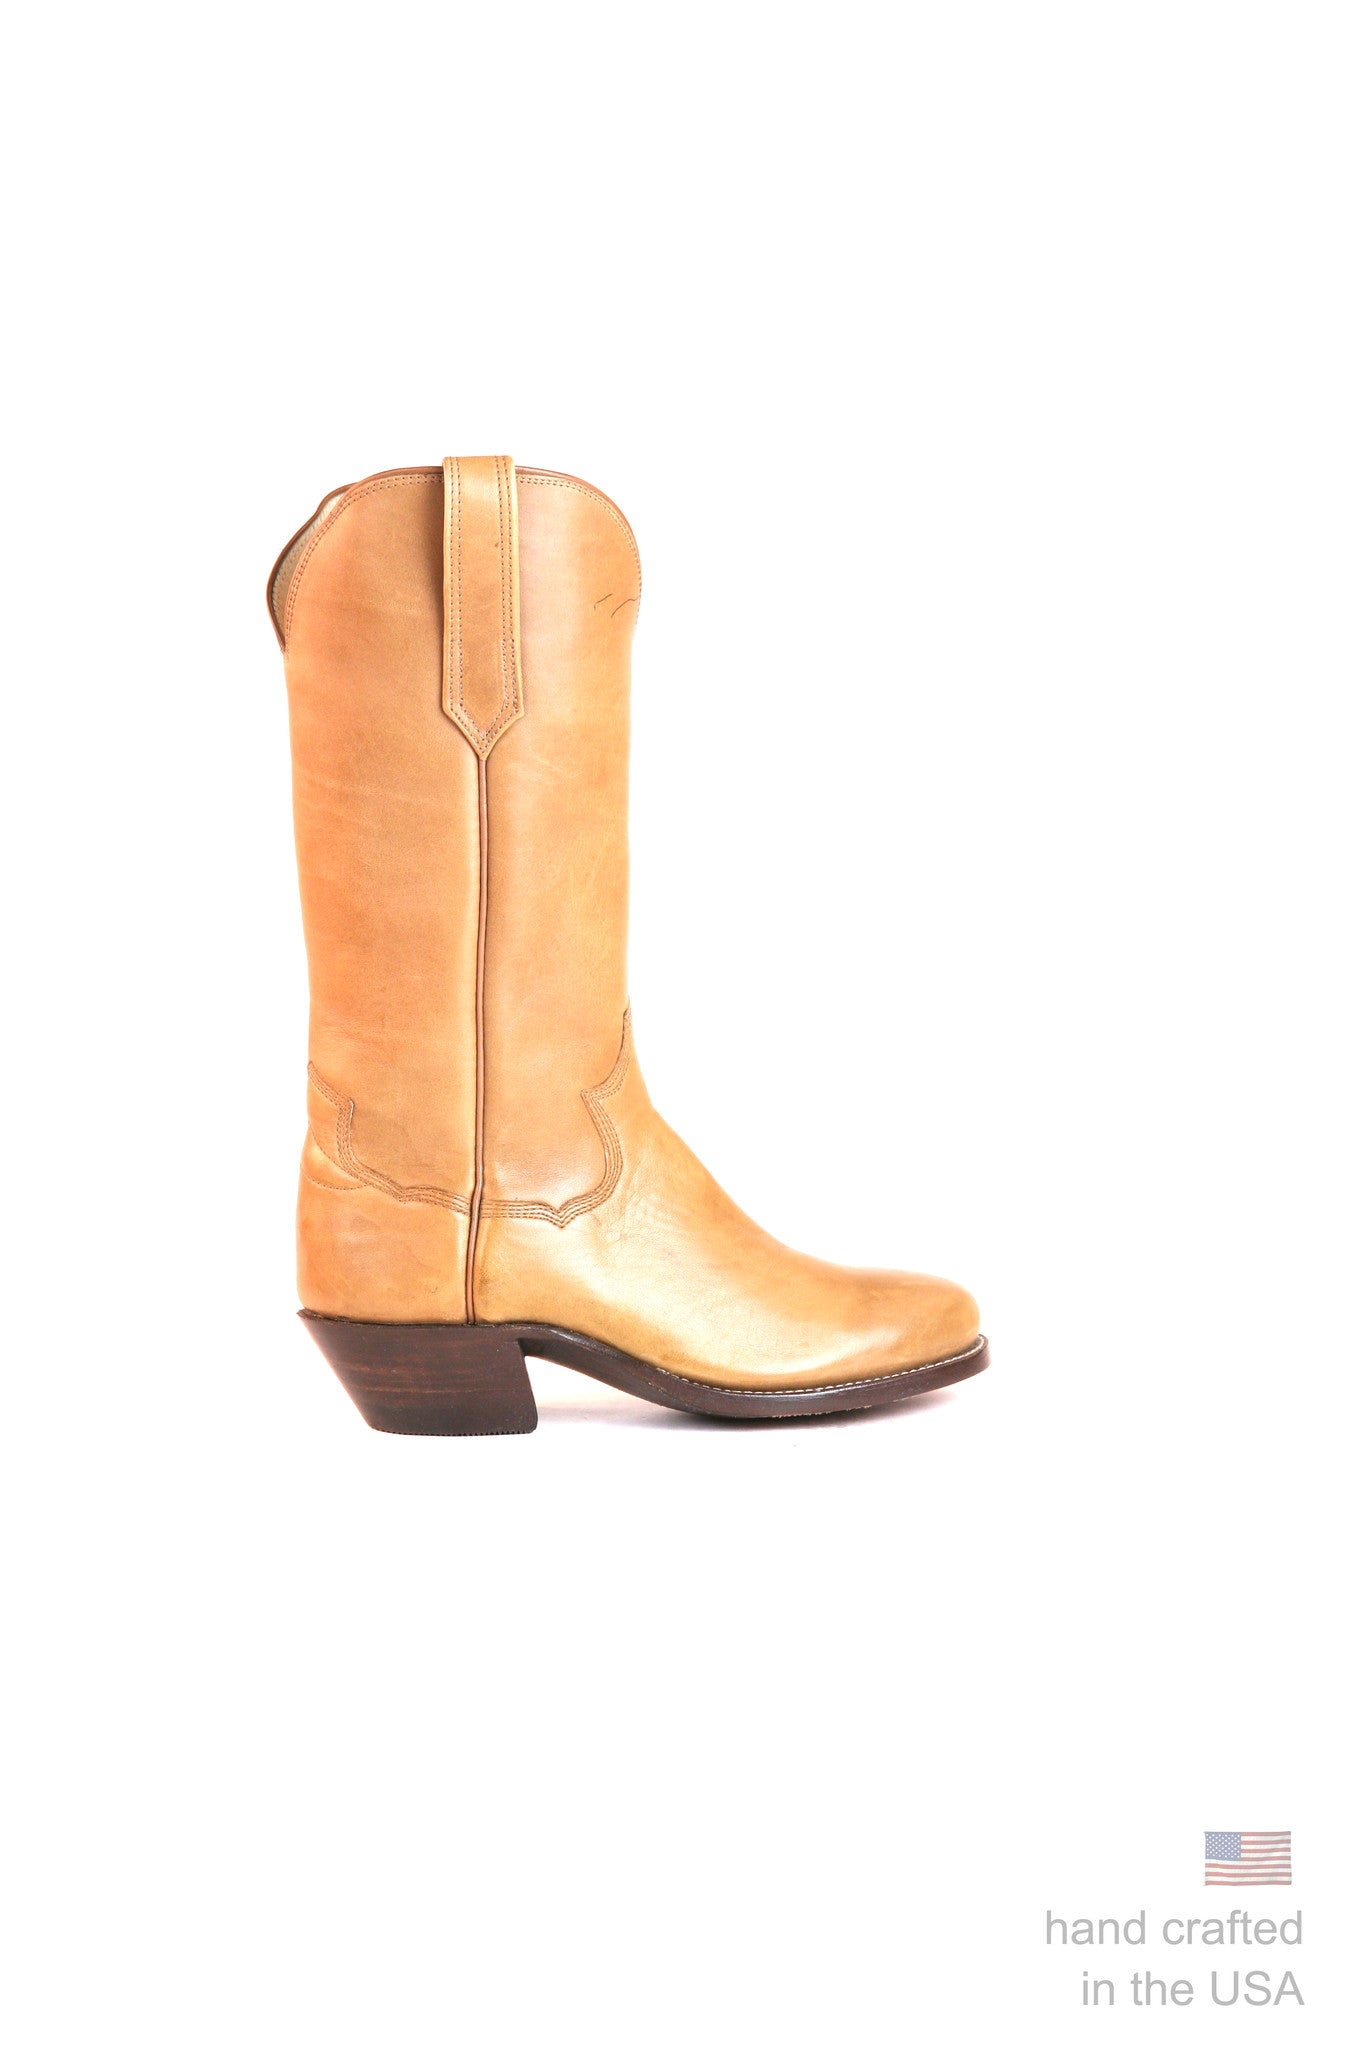 Singles: Boot 0072: Size 5.5 C